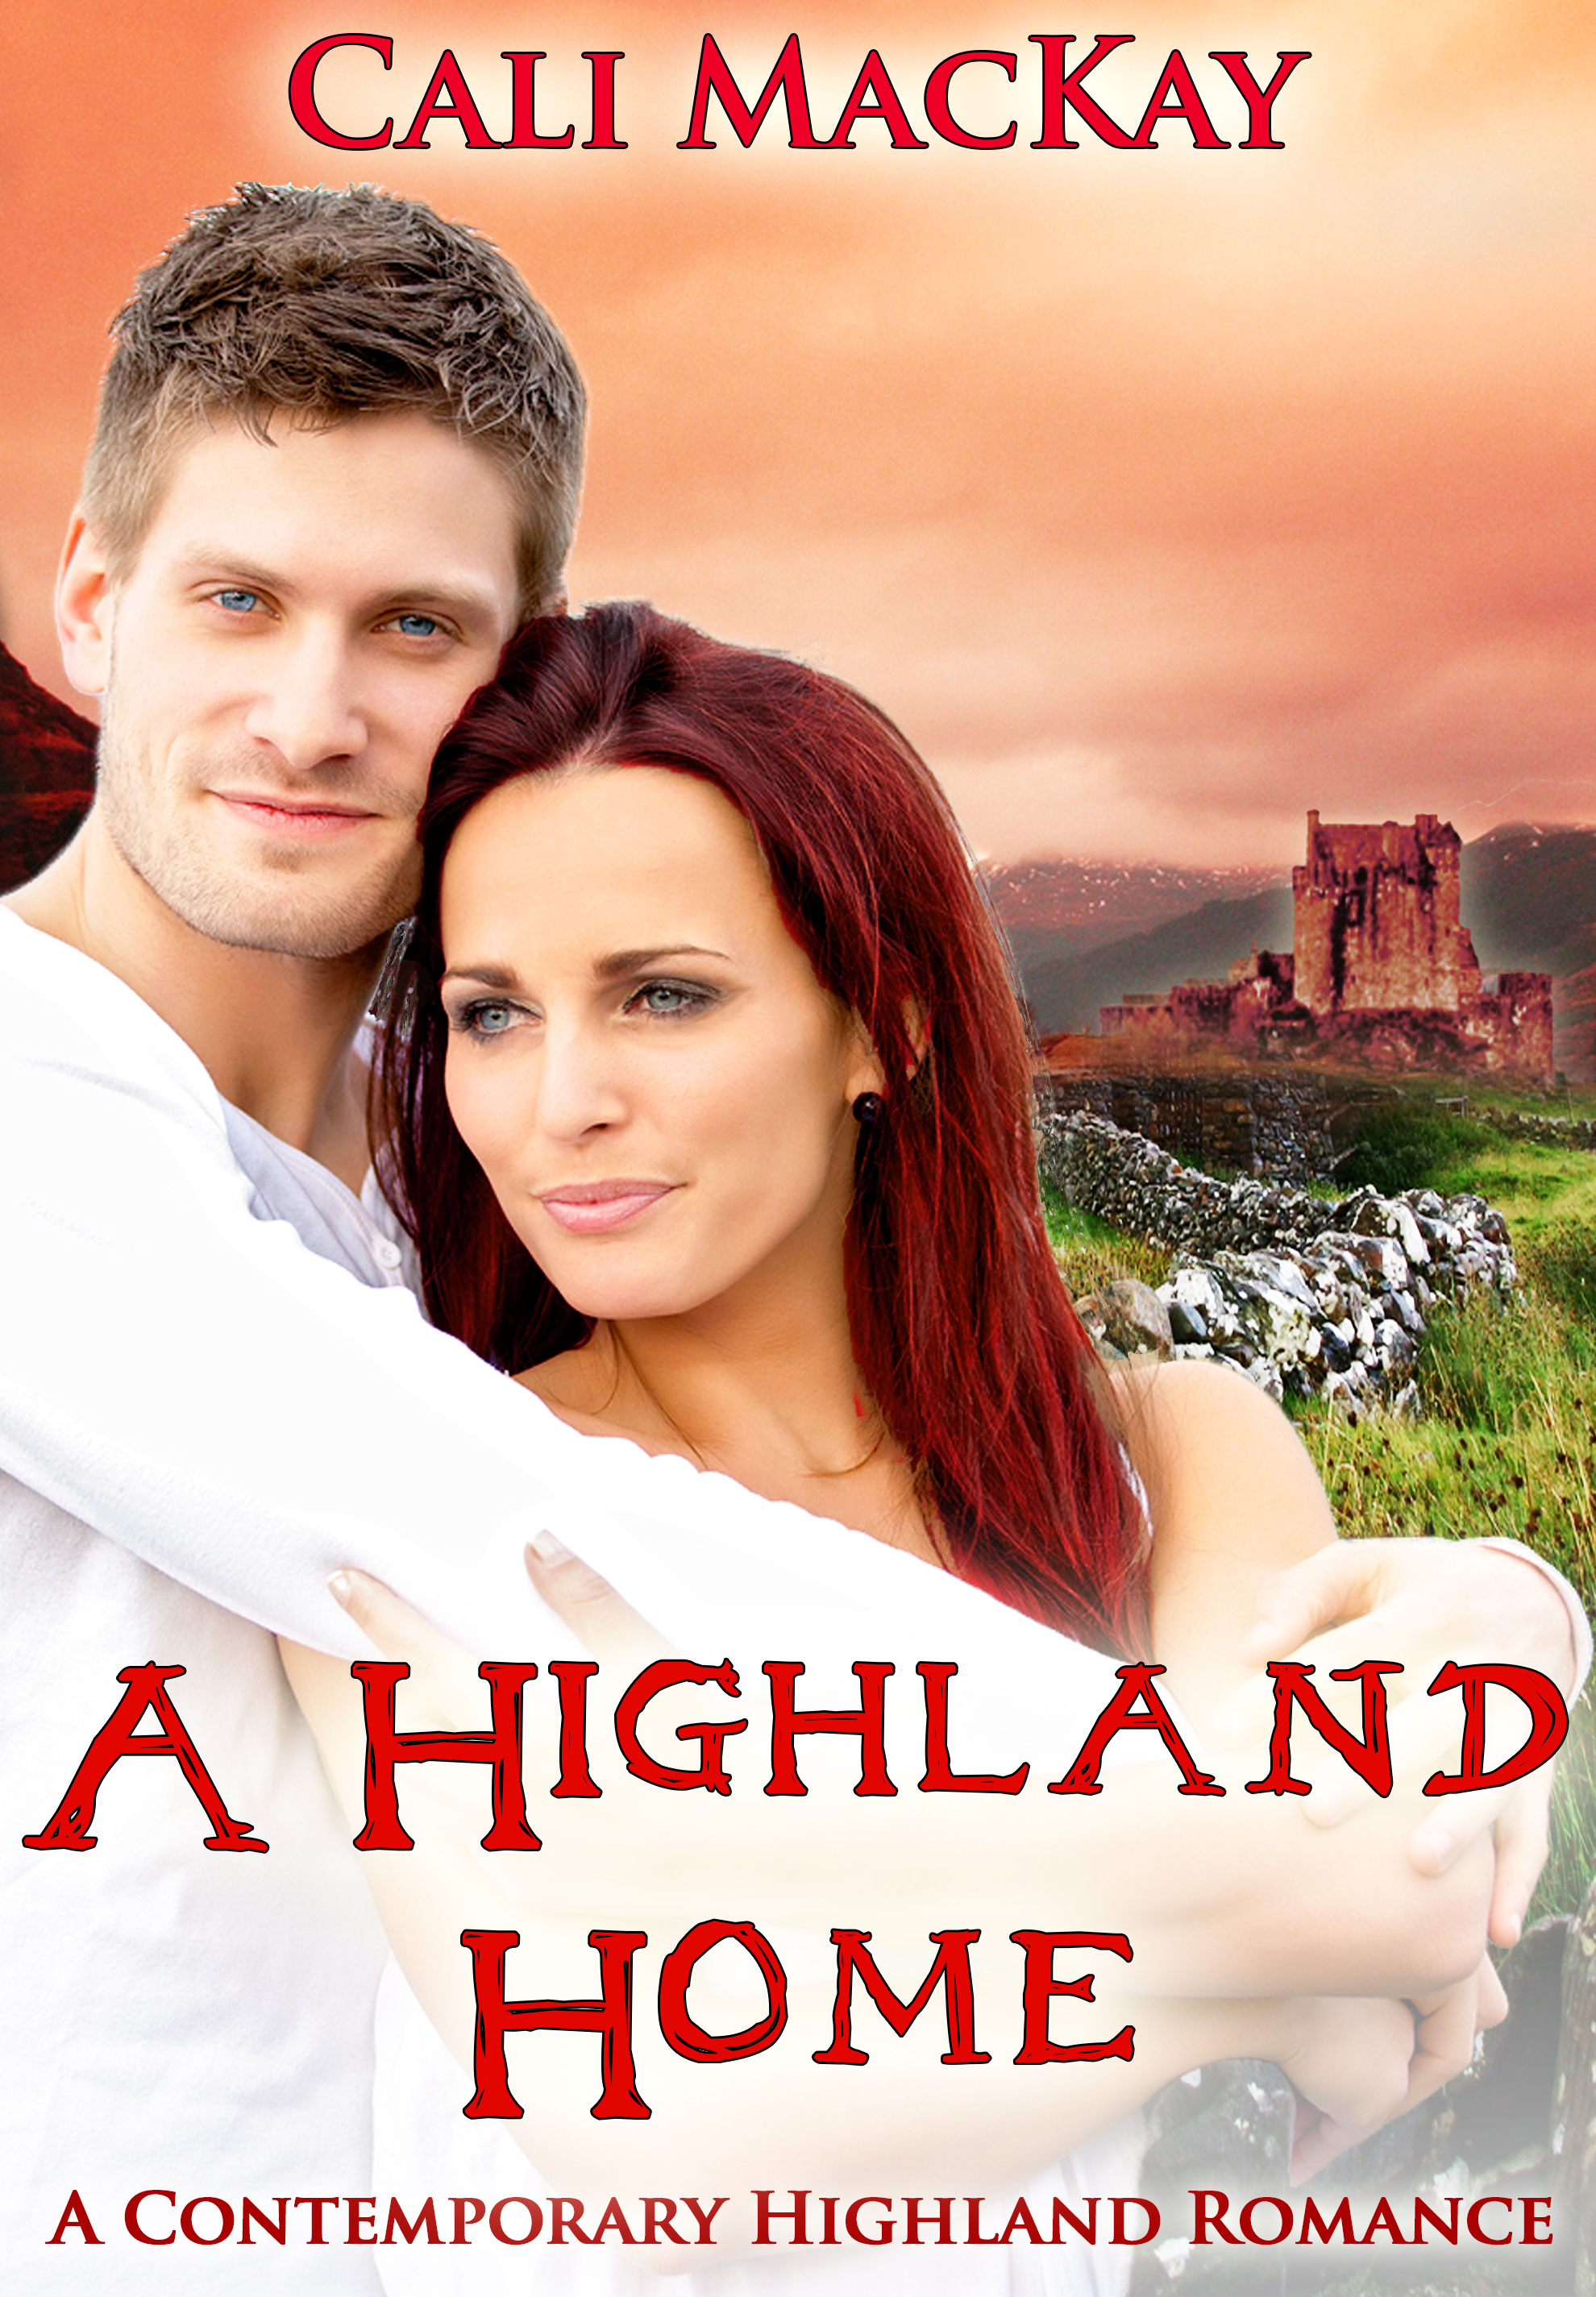 A Highland Home: A Contemporary Highland Romance